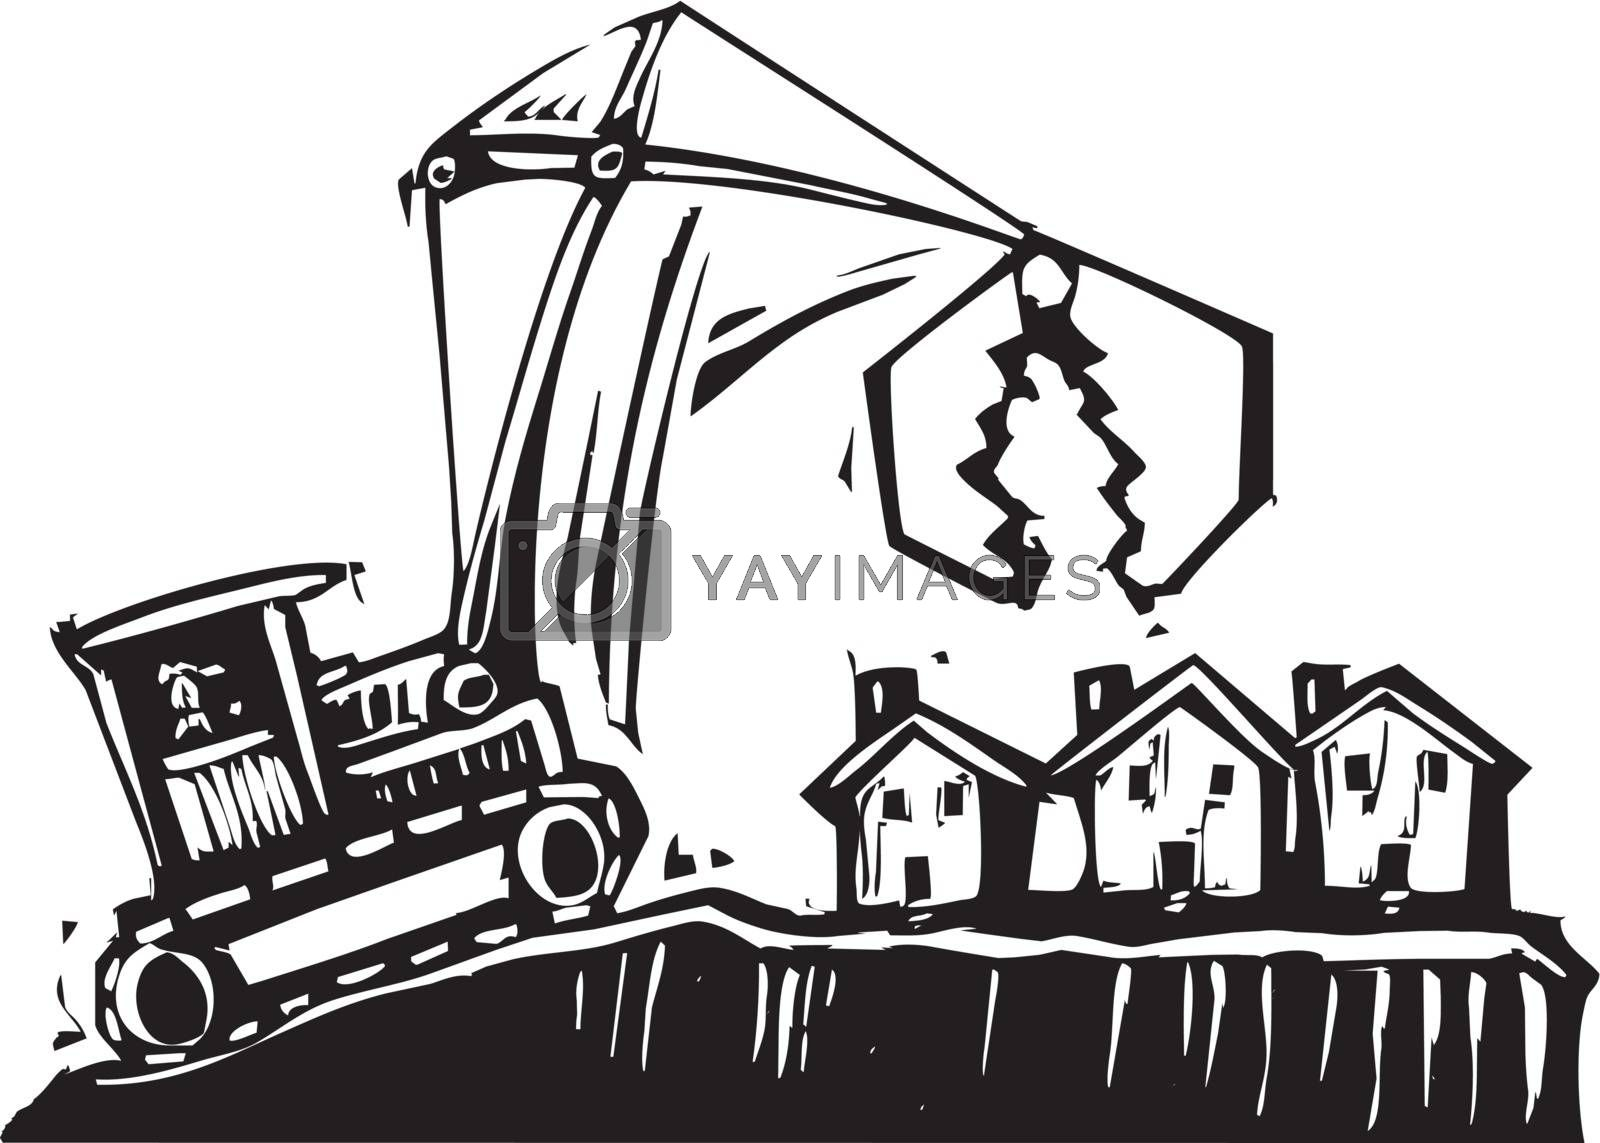 Woodcut style image of a crane getting ready to demolish small houses.